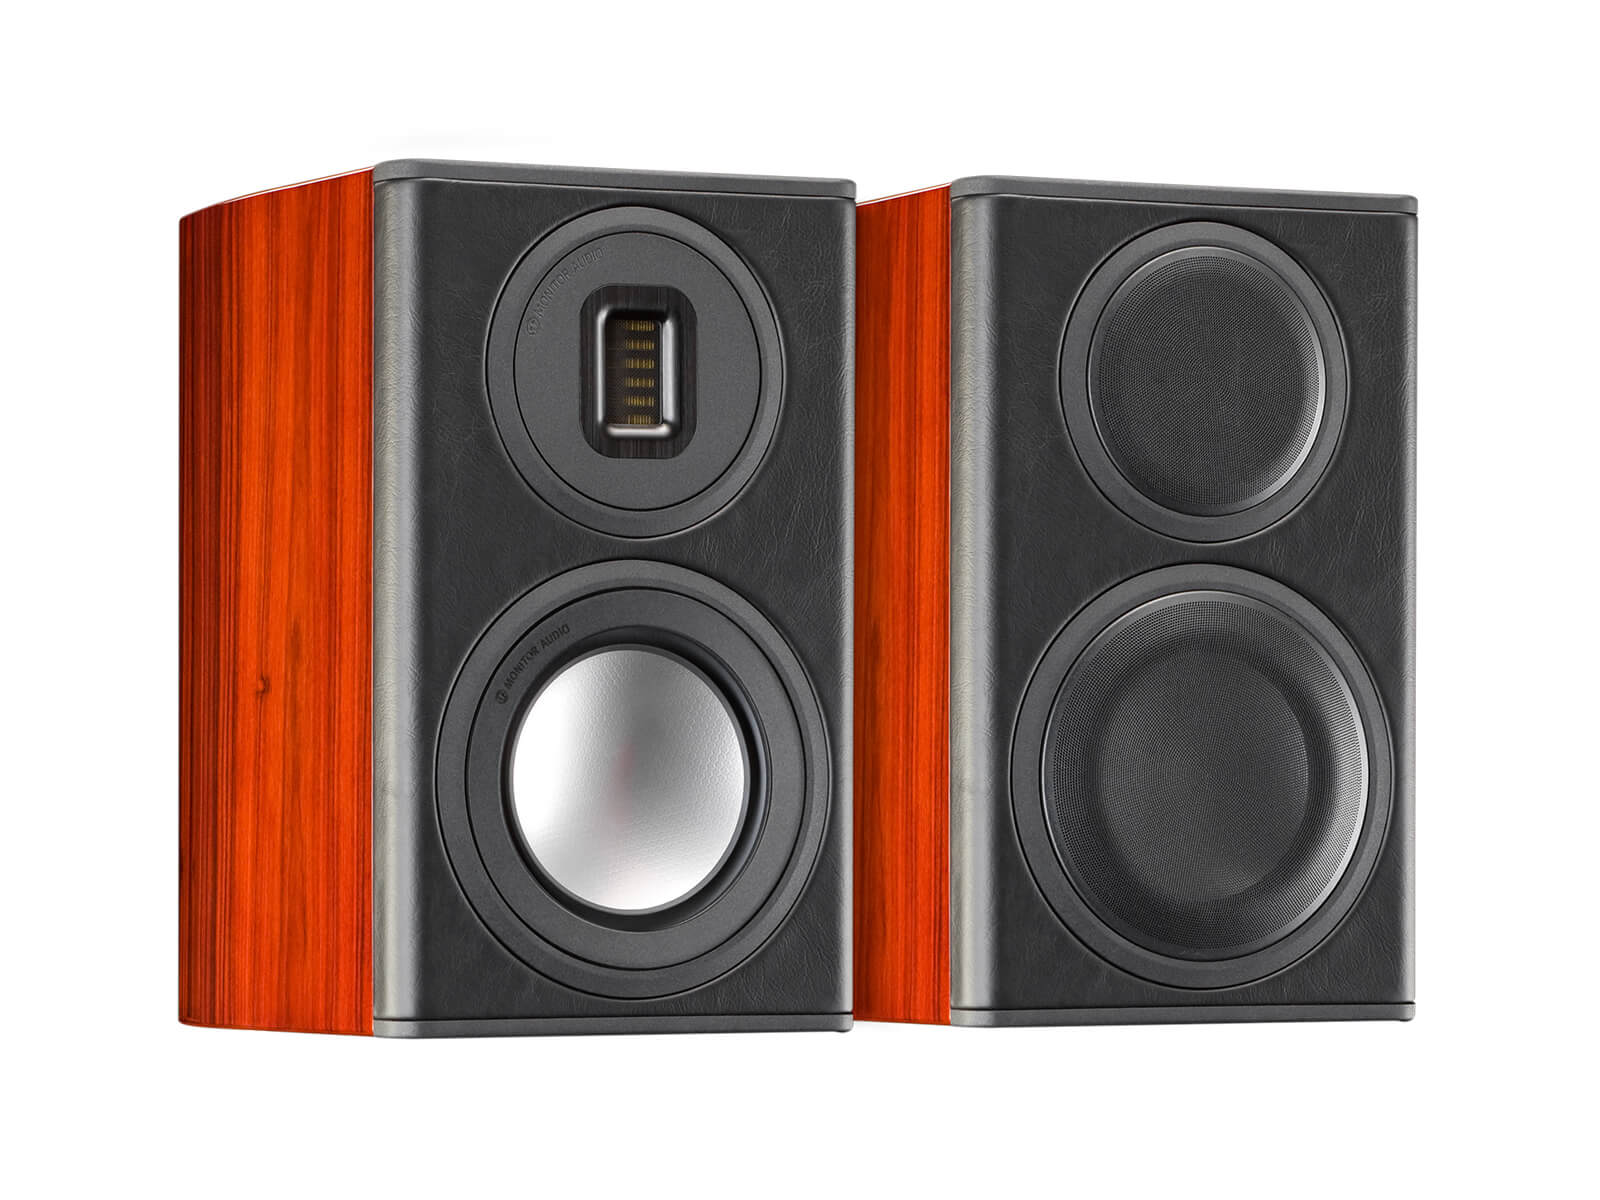 Platinum PL100 II, grille-less bookshelf speakers, with a piano black lacquer finish.